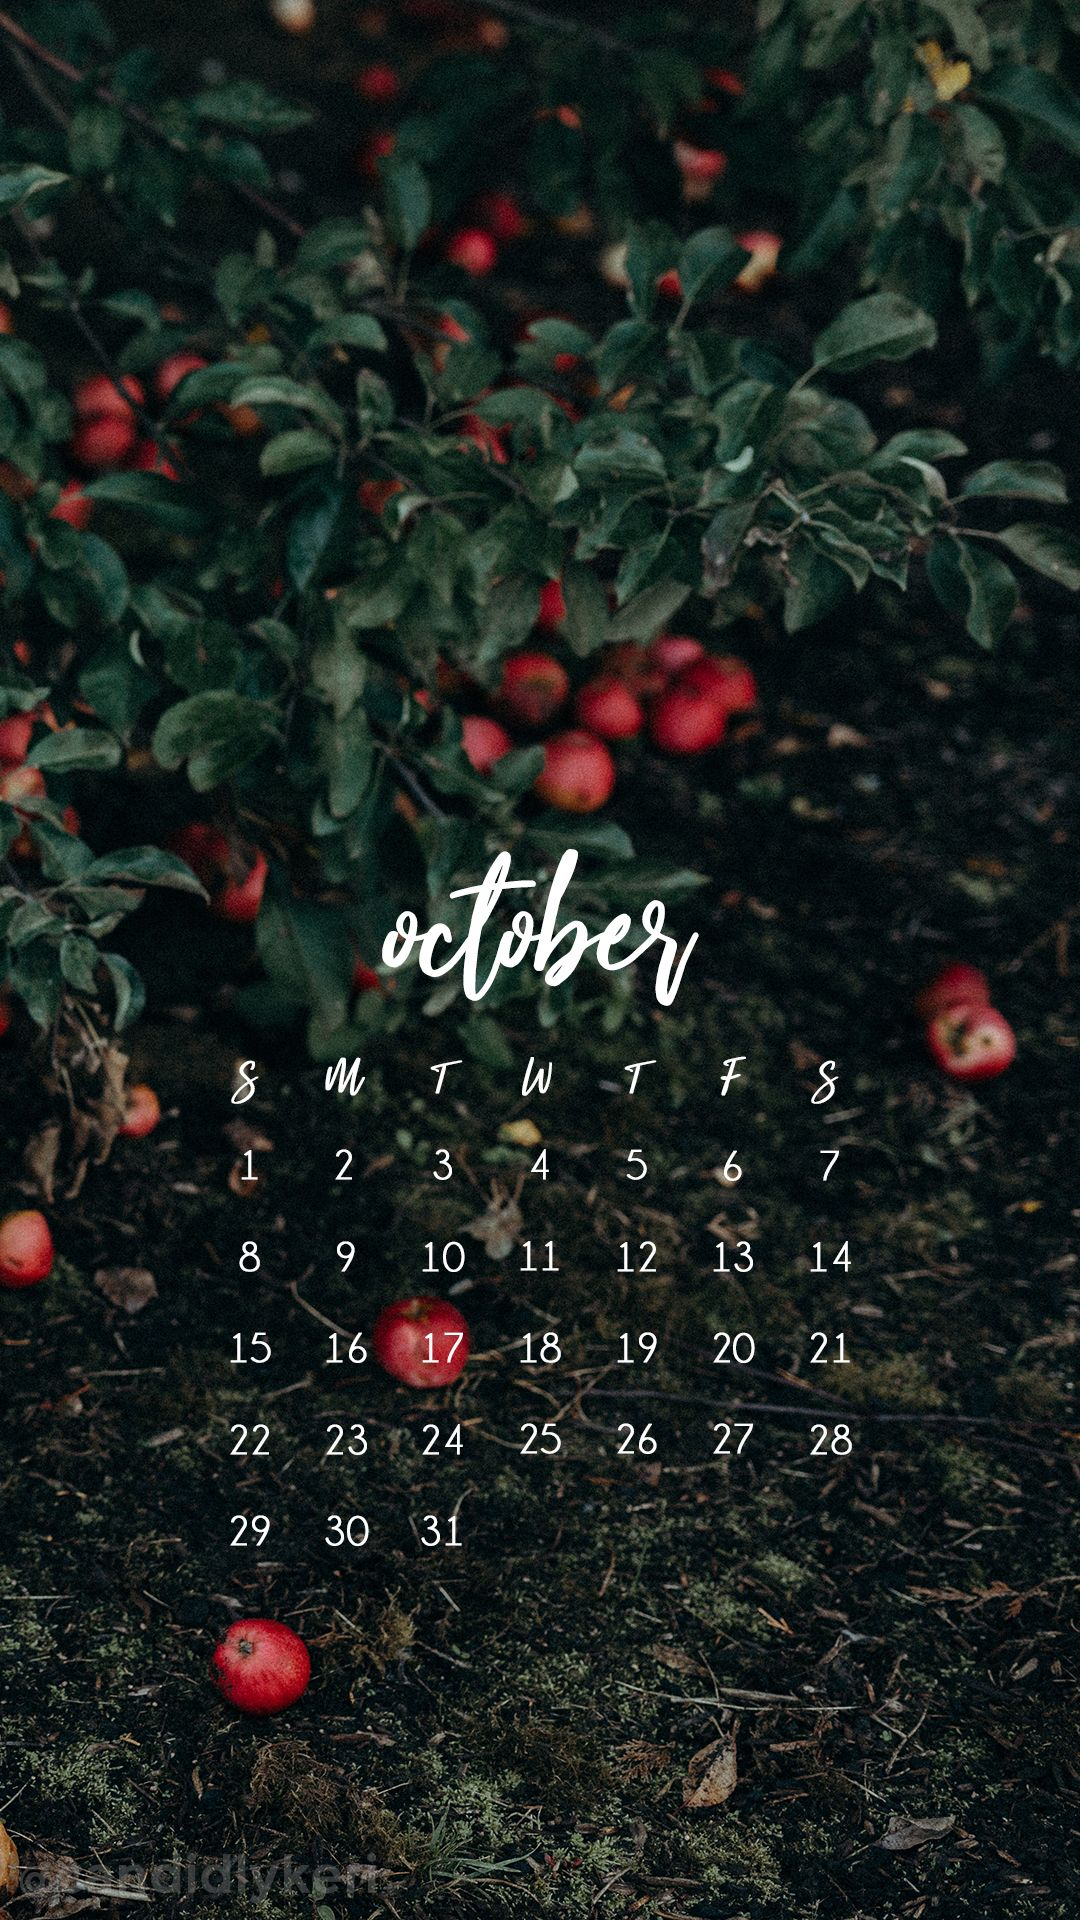 October calendar 2017 wallpaper you can download for free